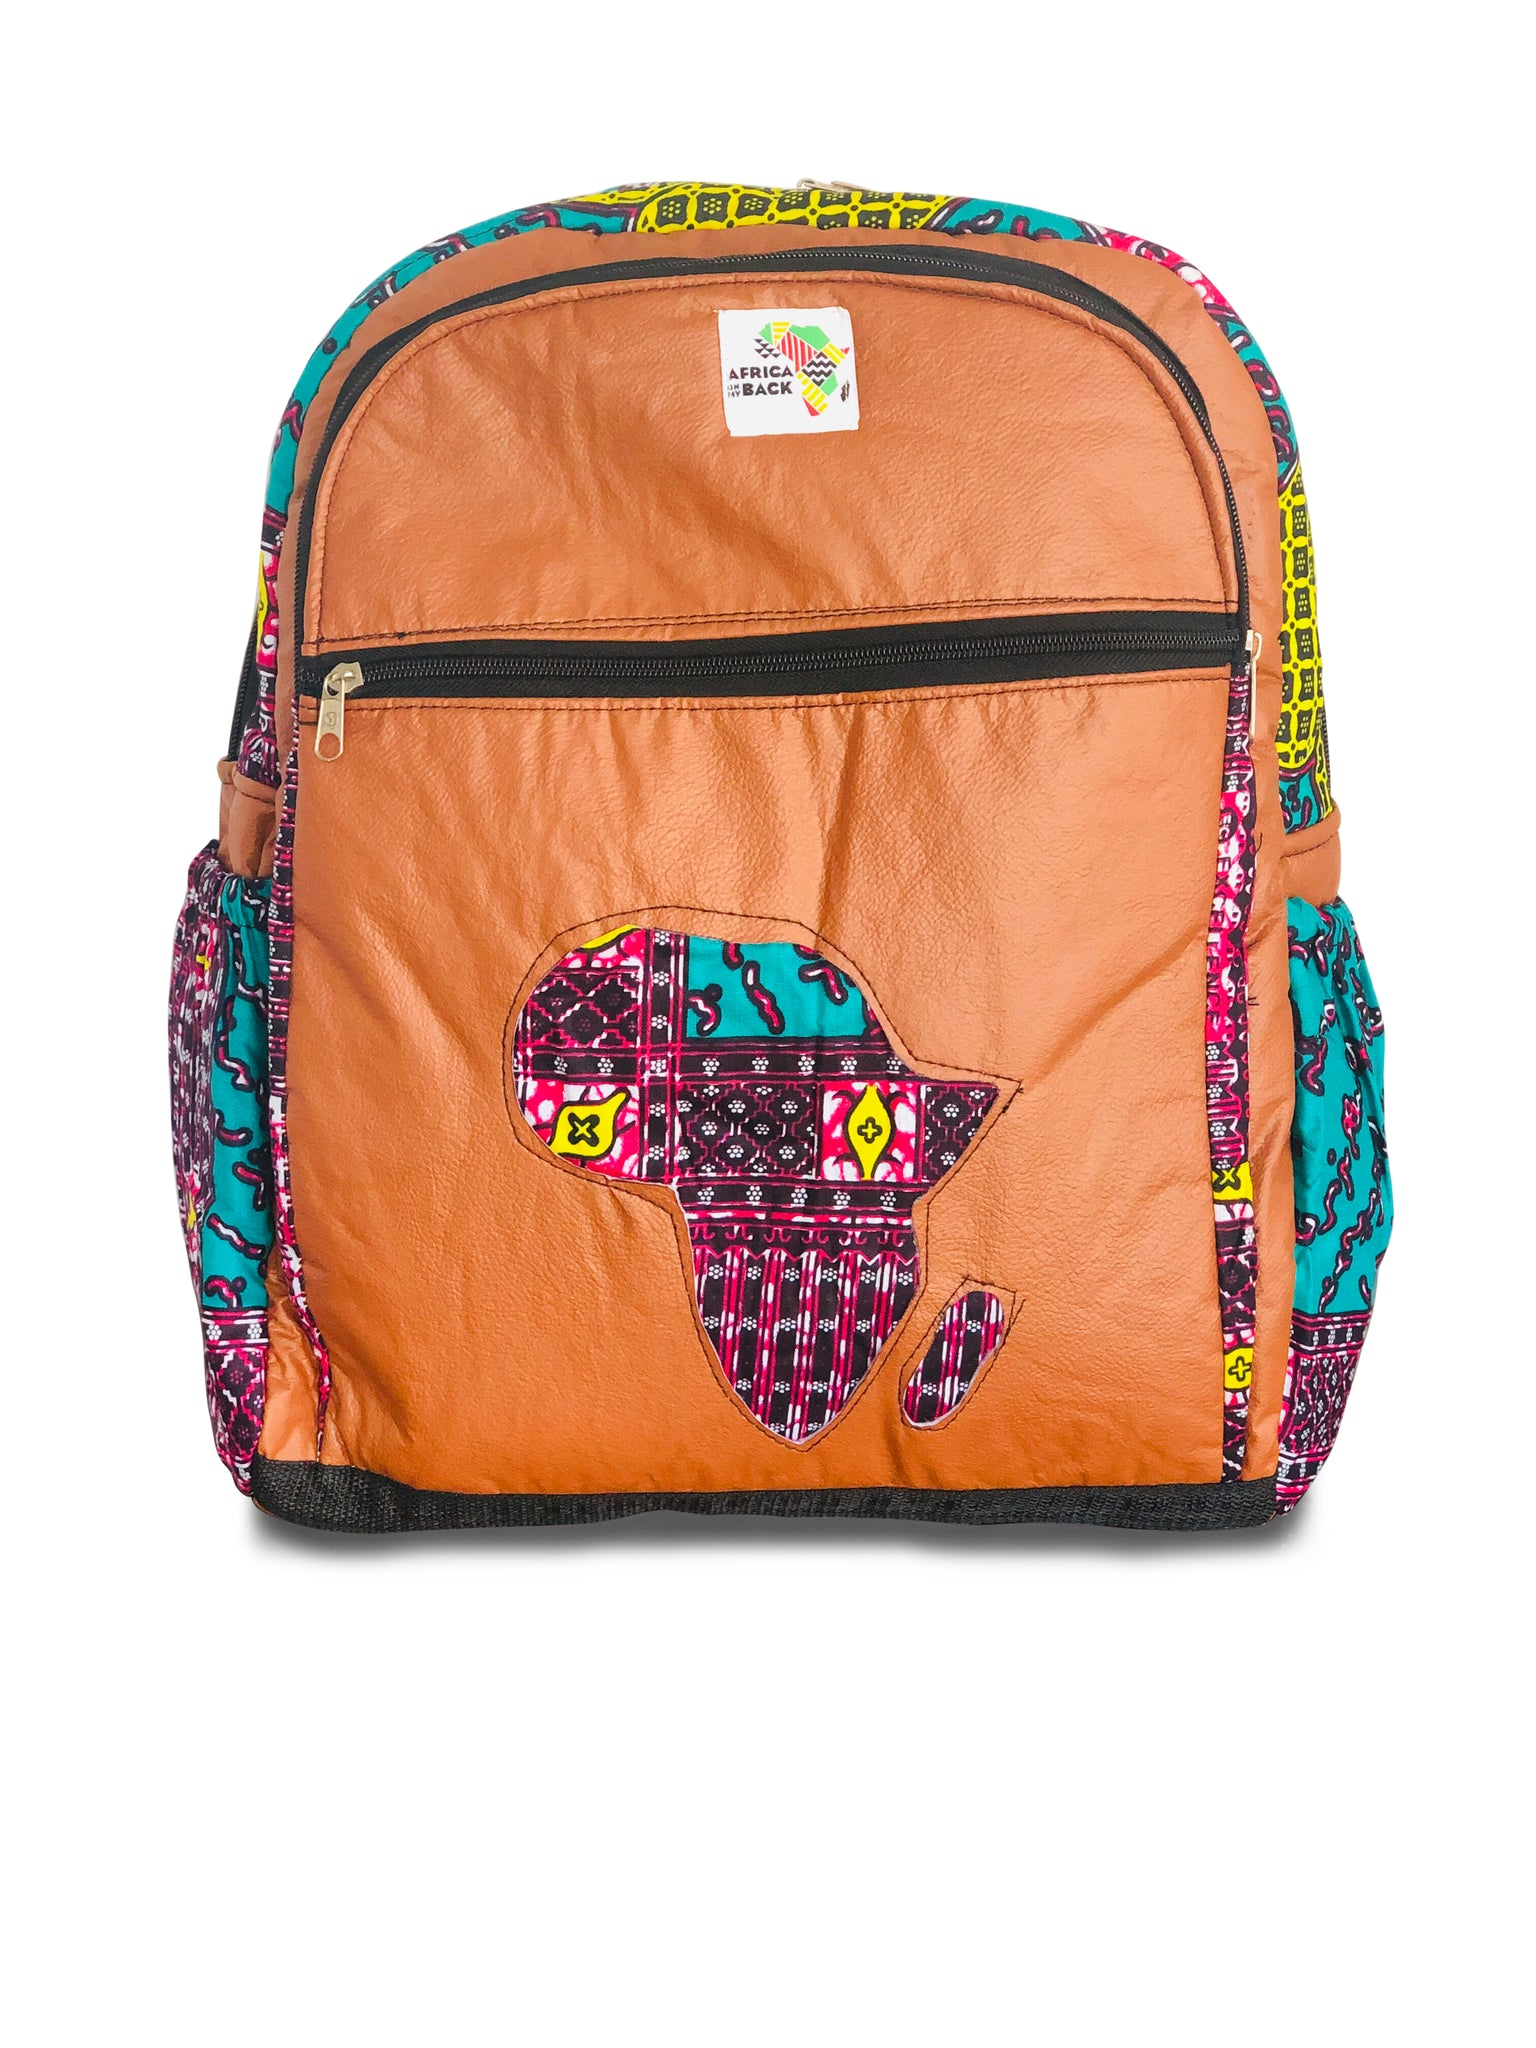 Limited Edition Africa Full Size Backpack (It's A Different 1)